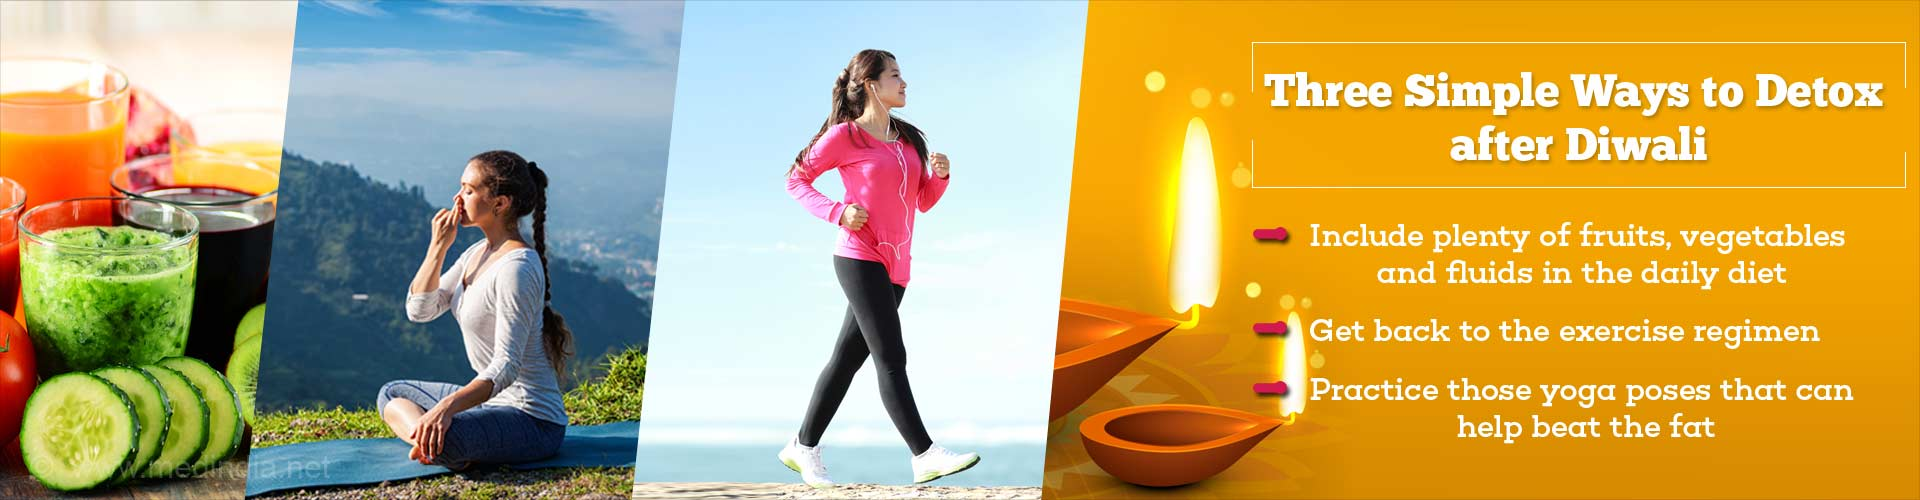 Three Simple Ways To Detox After Diwali